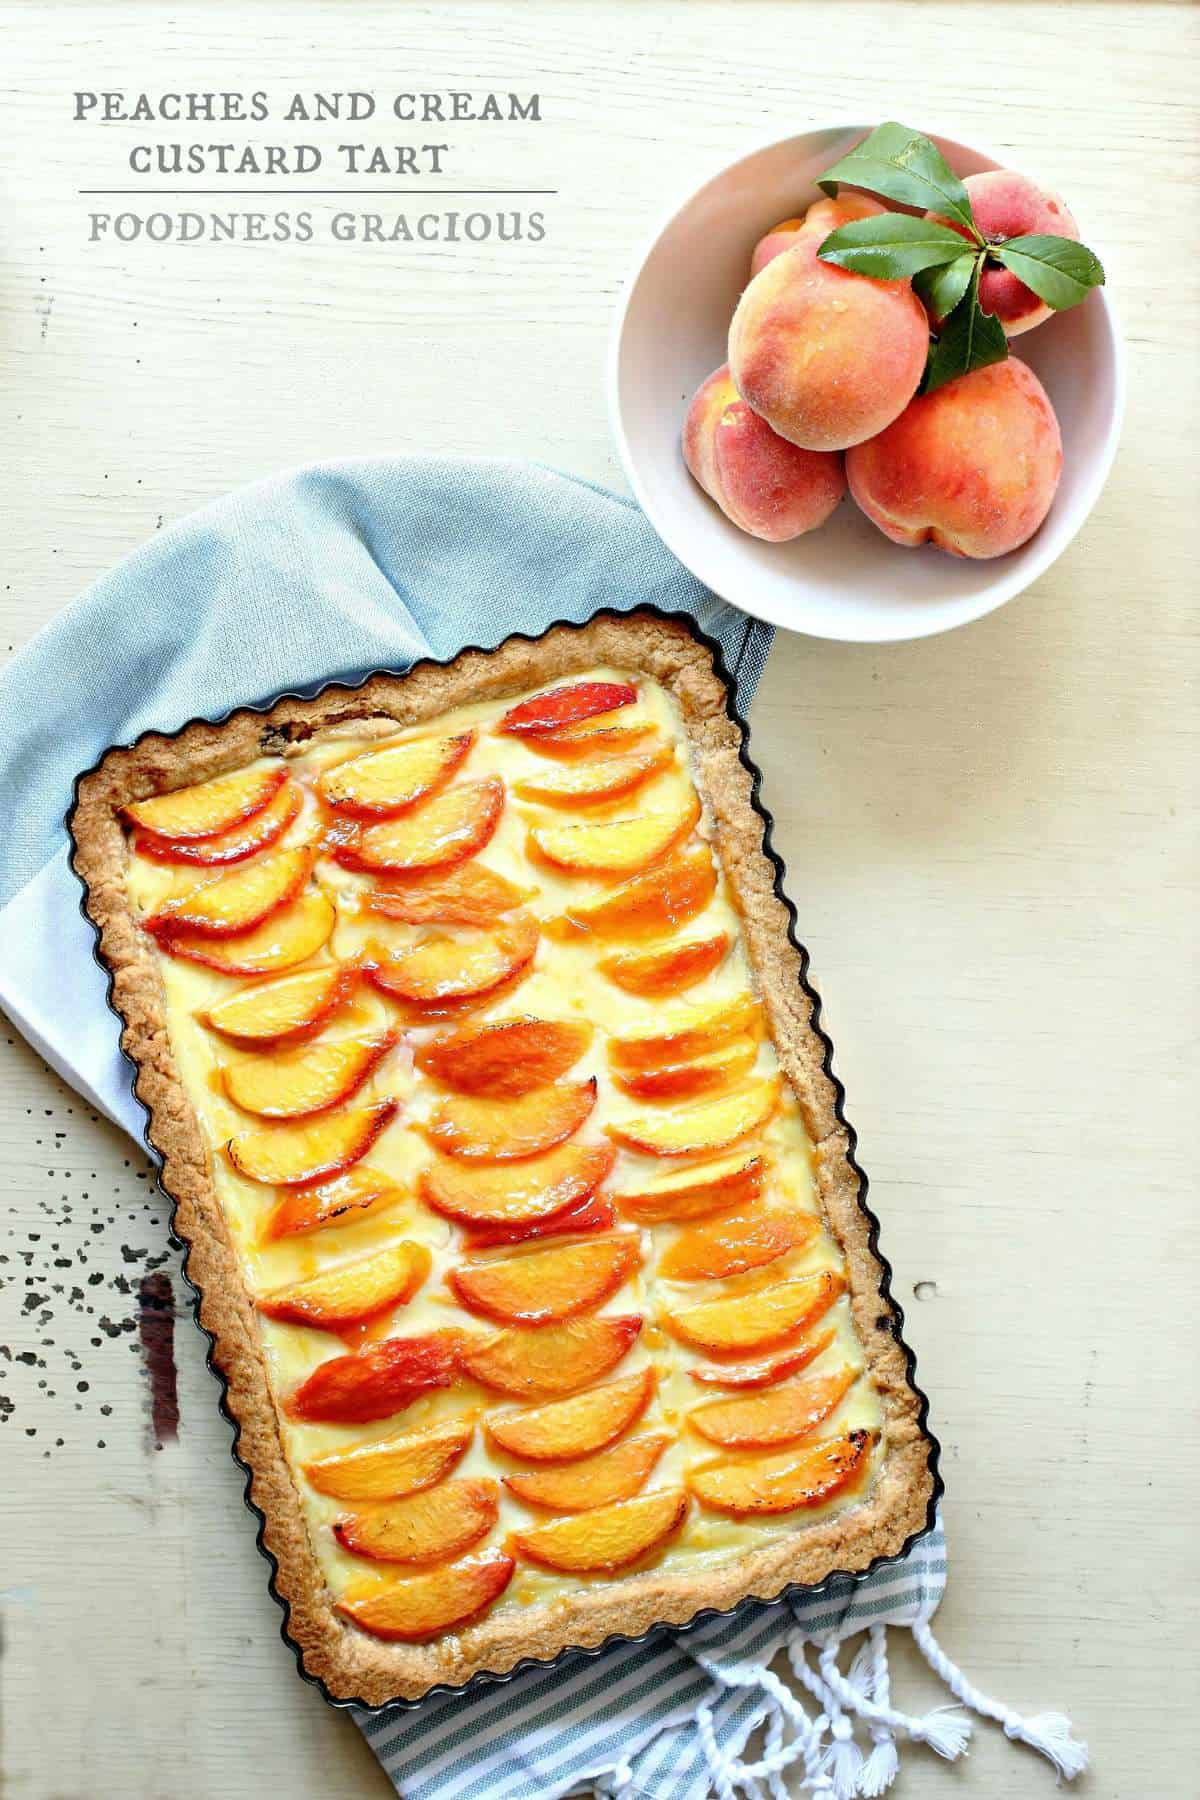 Peaches and Cream Custard Tart